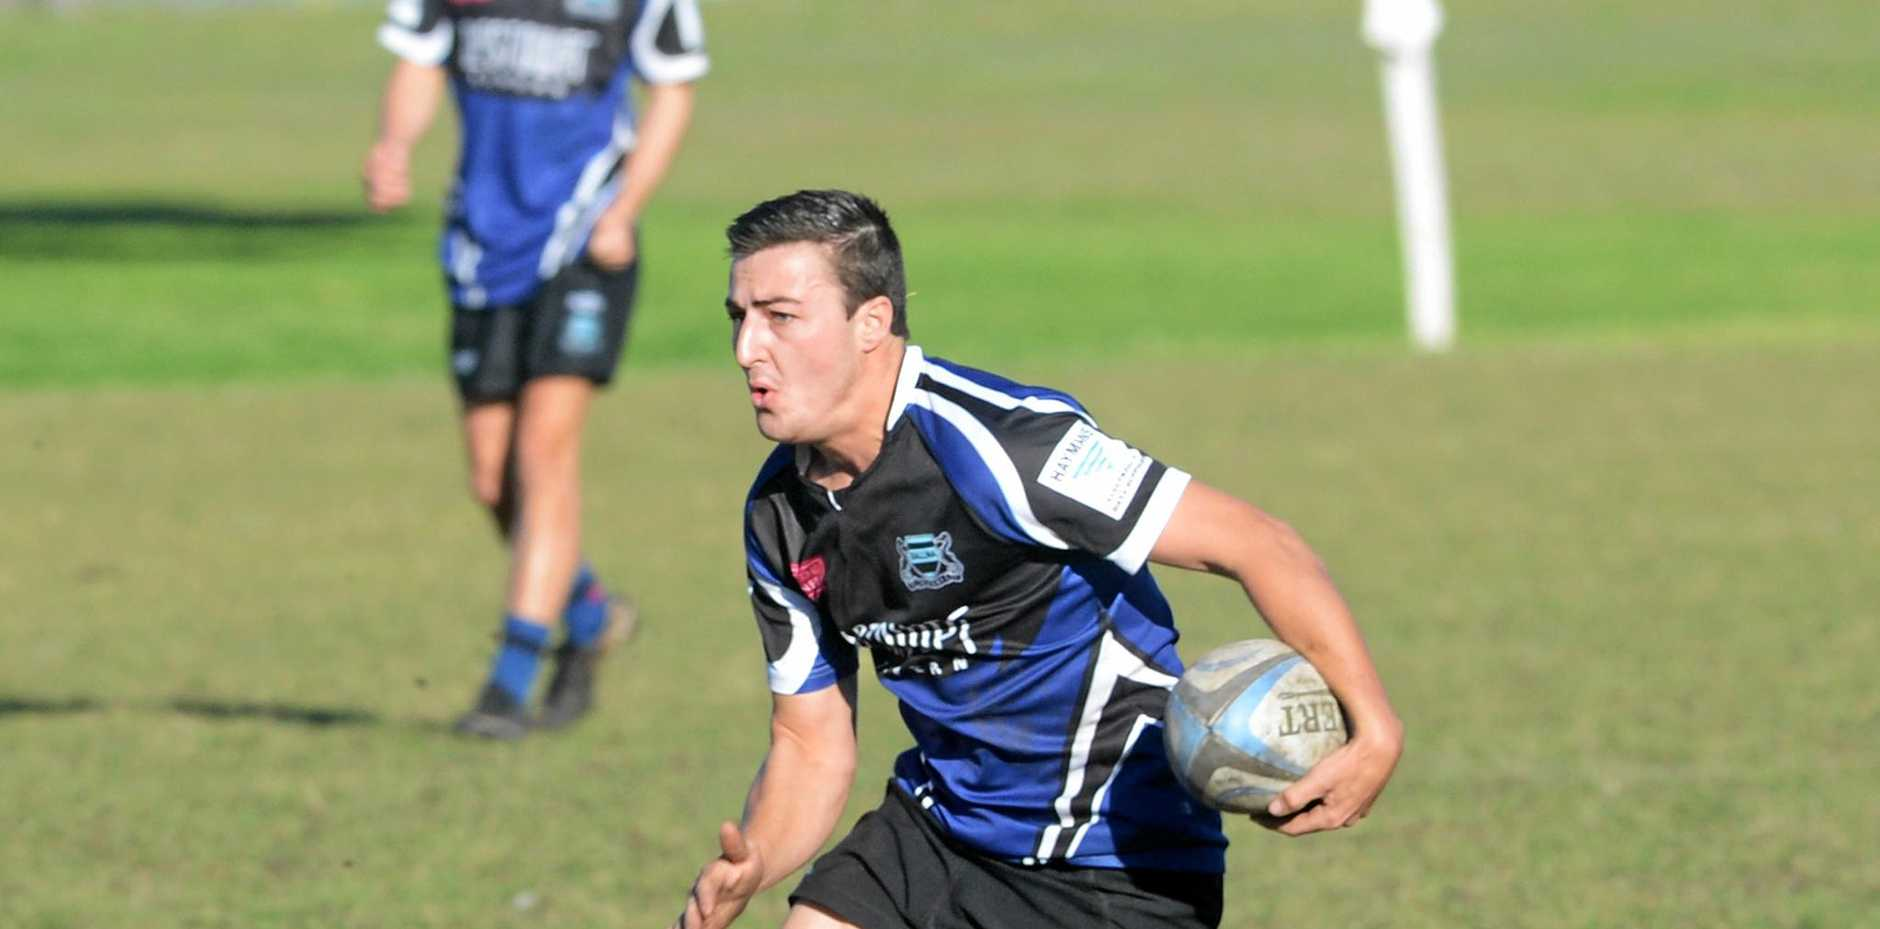 Mitch Knight in action for Ballina in Far North Coast rugby union. Knight will take over at five-eighth today with his brother Grant away representing NSW Country. reille Merlet-Shaw/The Northern Star